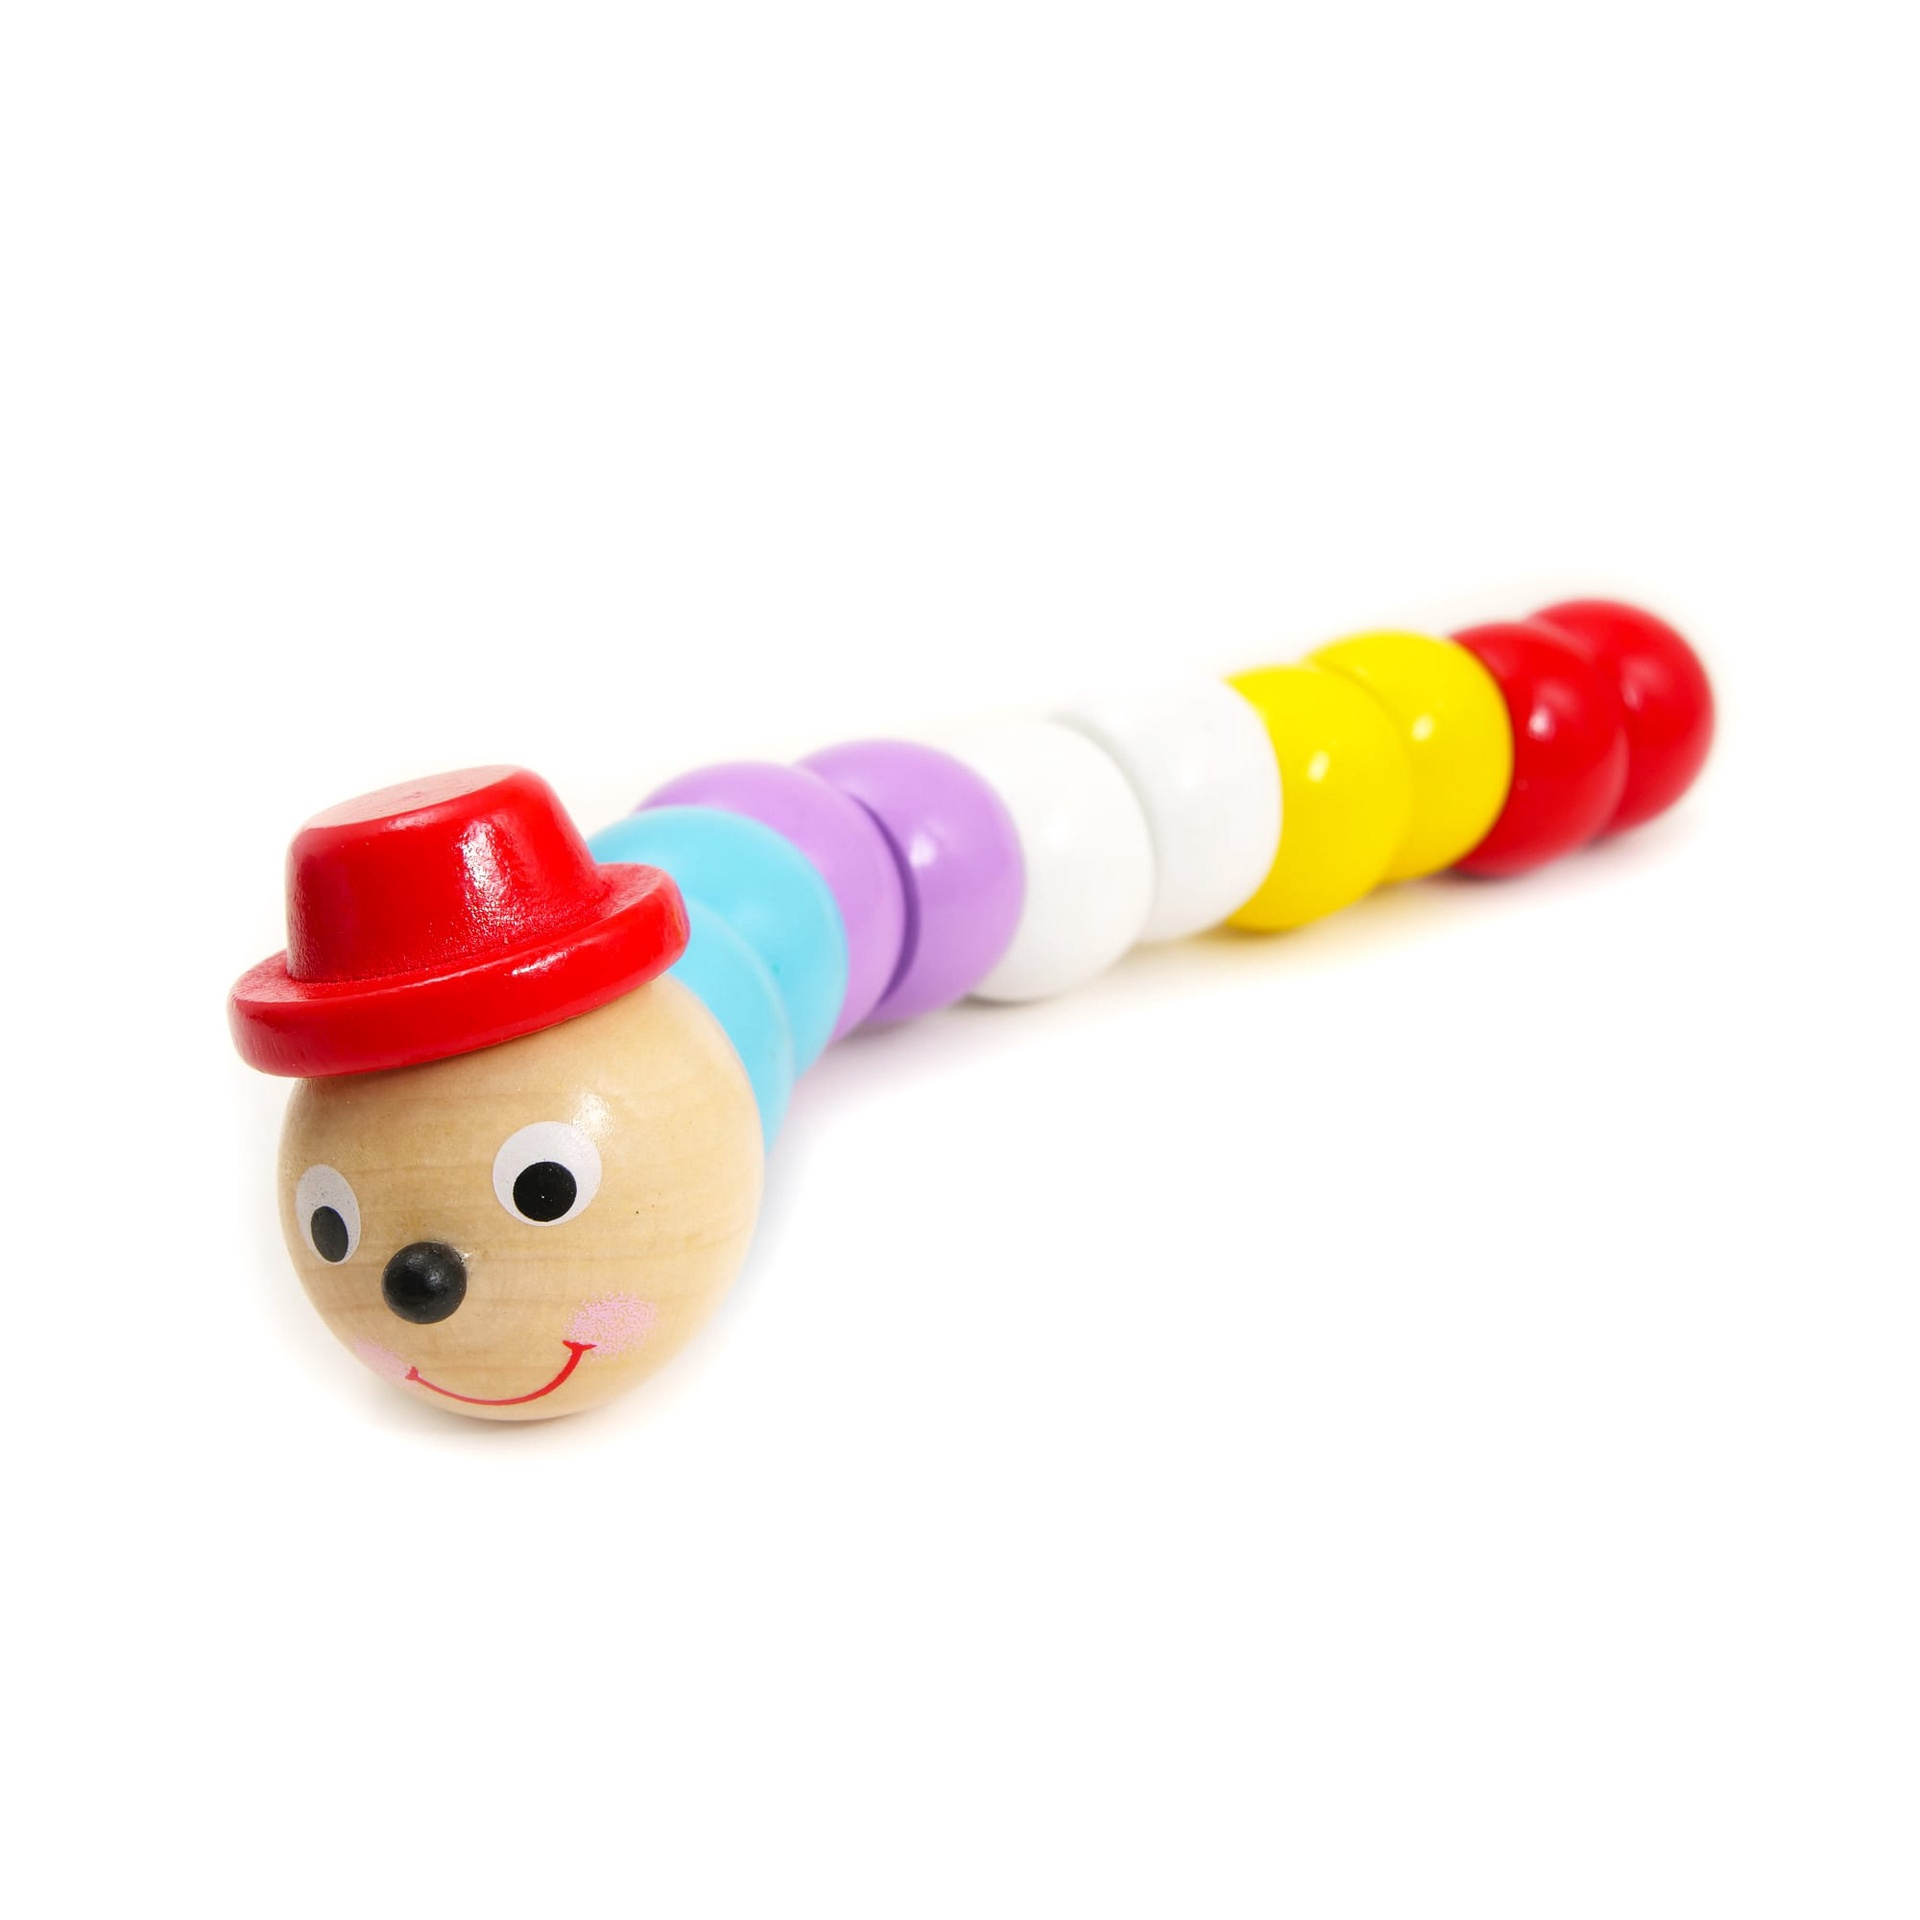 WOODEN WIGGLY WORM